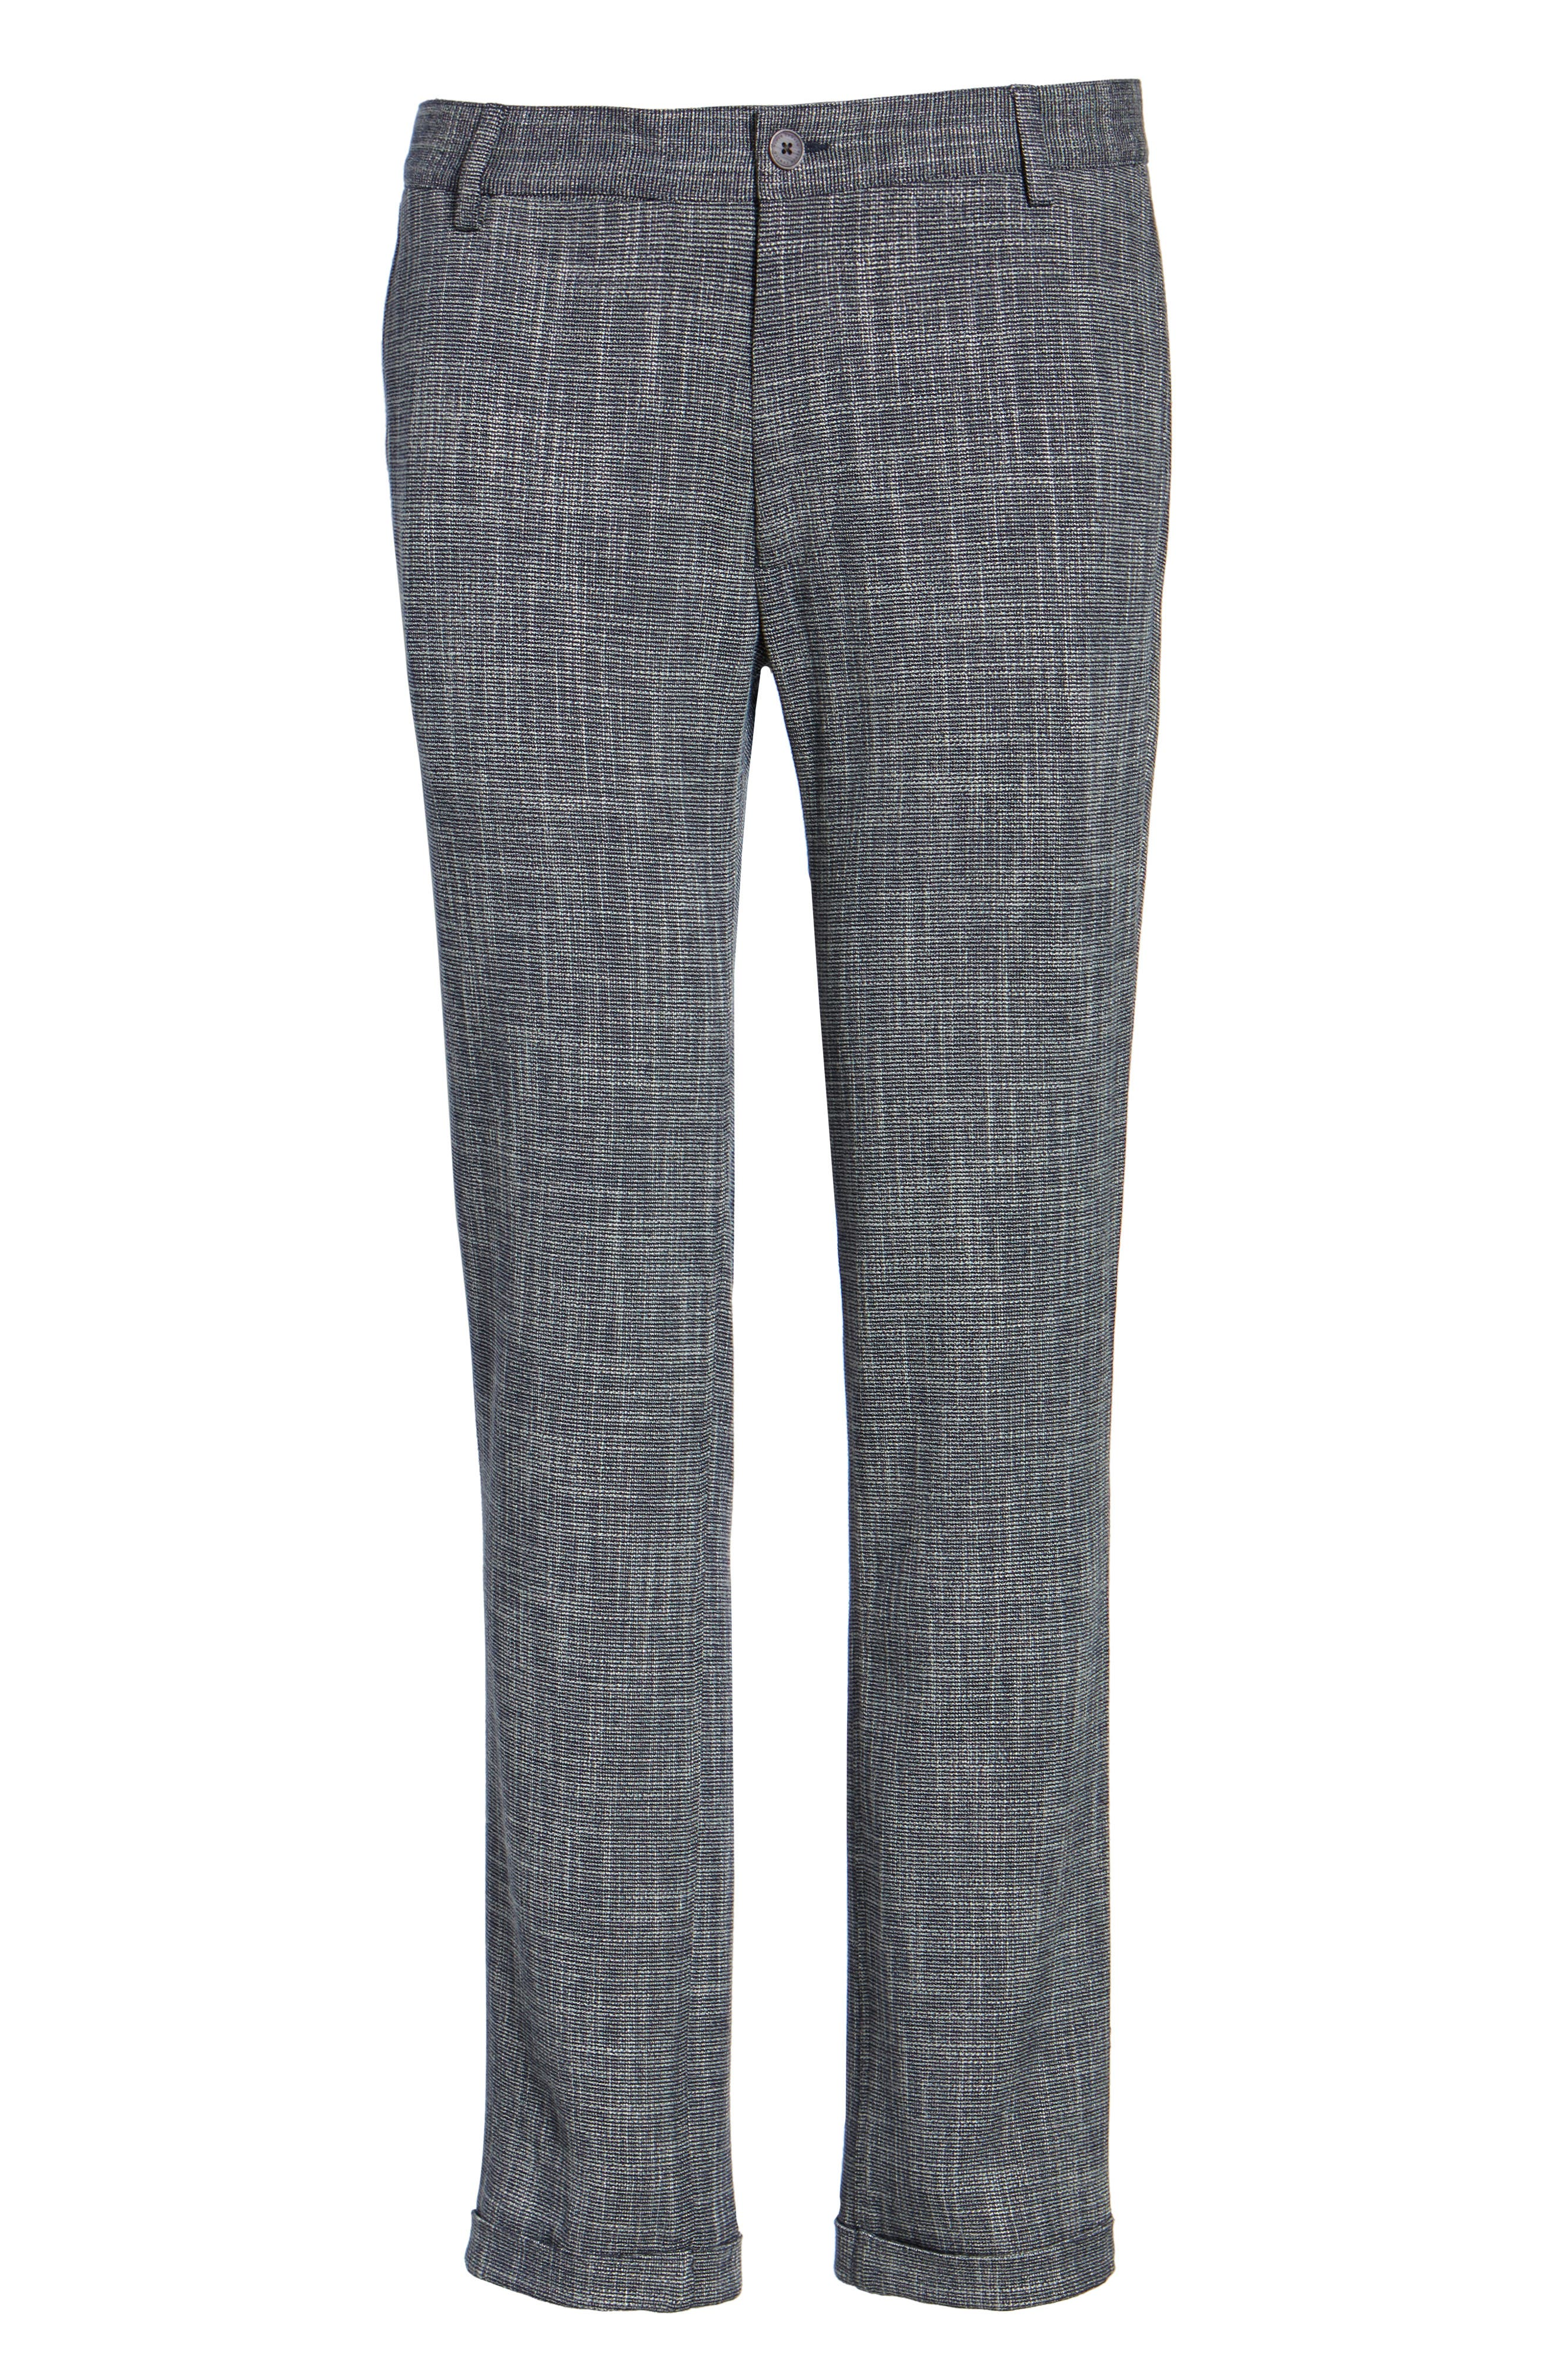 Slim Fit Cuffed Pants,                             Alternate thumbnail 5, color,                             Navy Scratch Weave